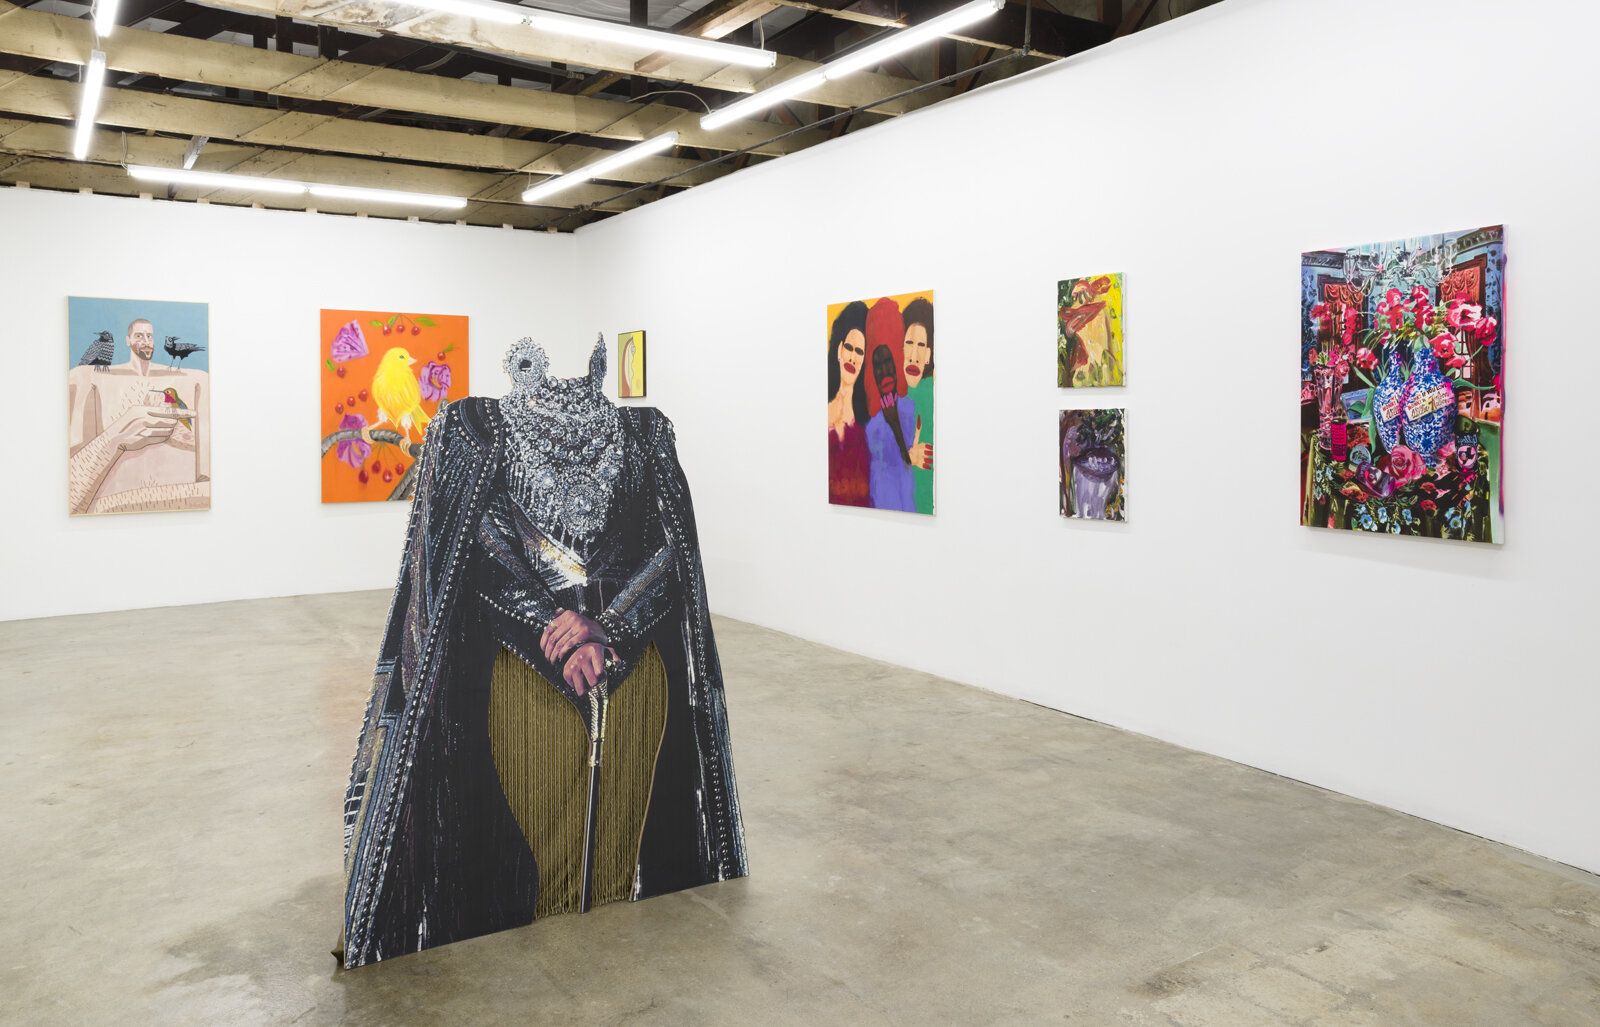 Installation view of Mirror Gazing, featuring paintings hung around white walls and a sculpture in the center of the room. The sculpture is of a woman's body wearing an ornate coat and necklace. The figure's head is missing.